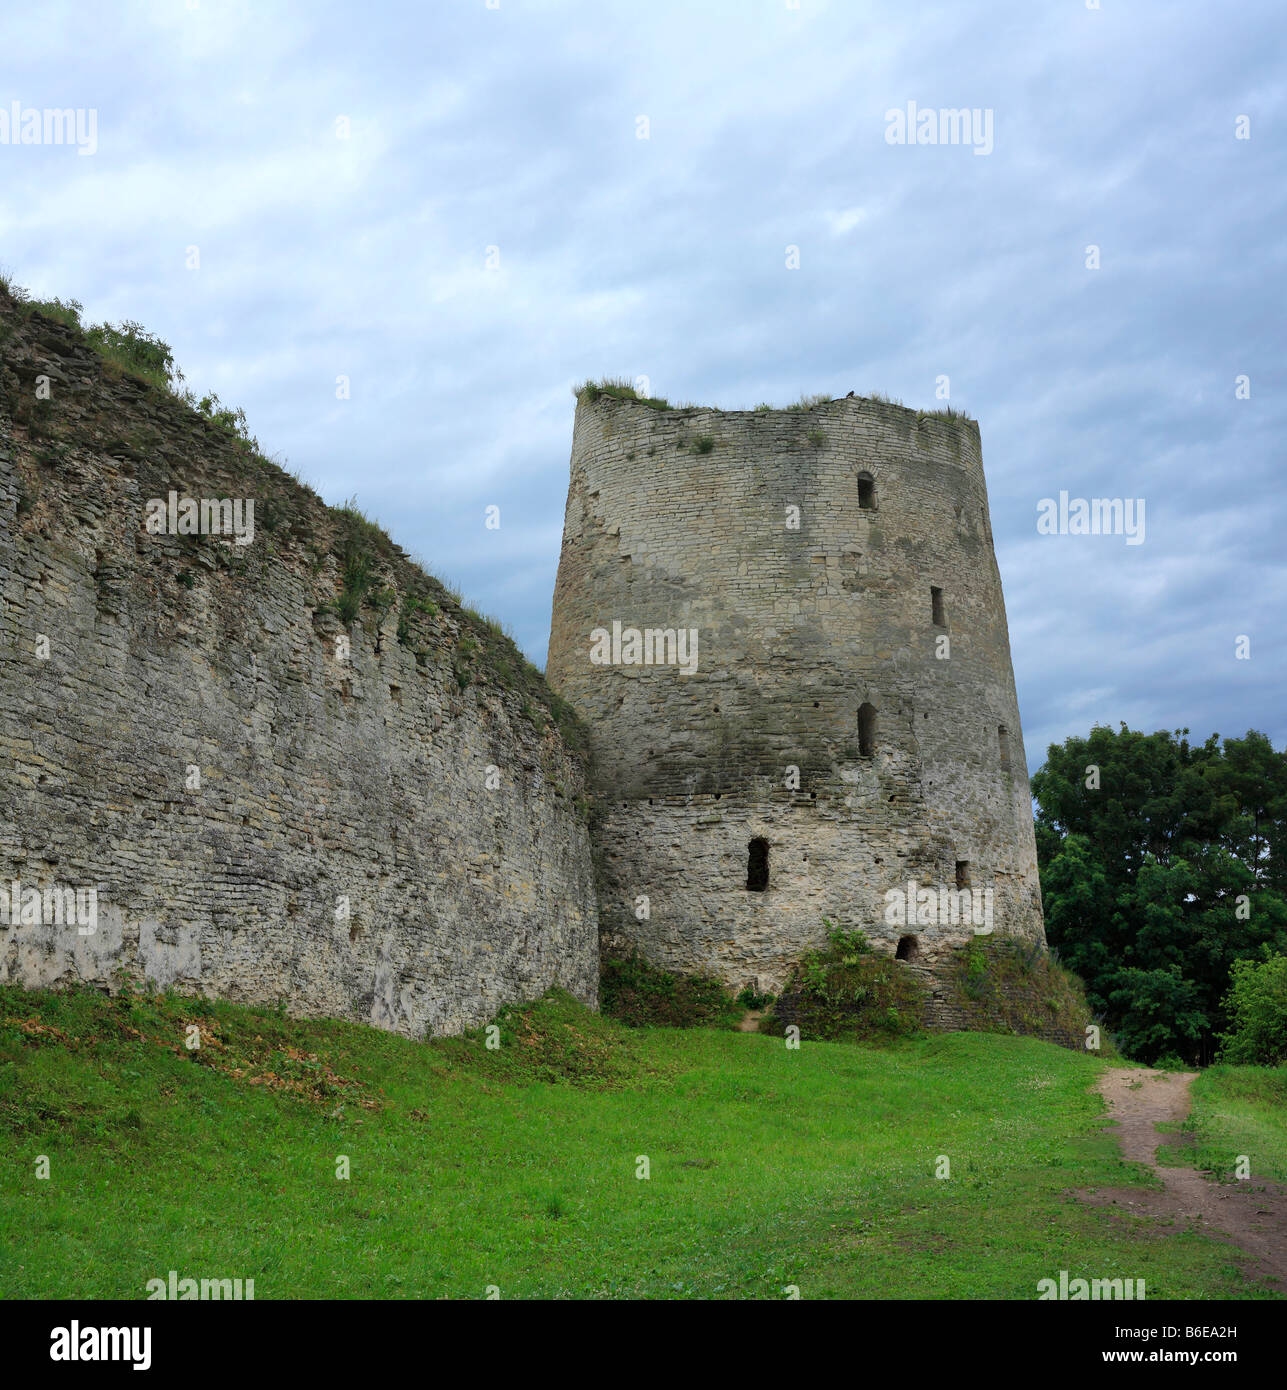 Izborsk fortress, Pskov region: photo and description, history of sights, how to get 47